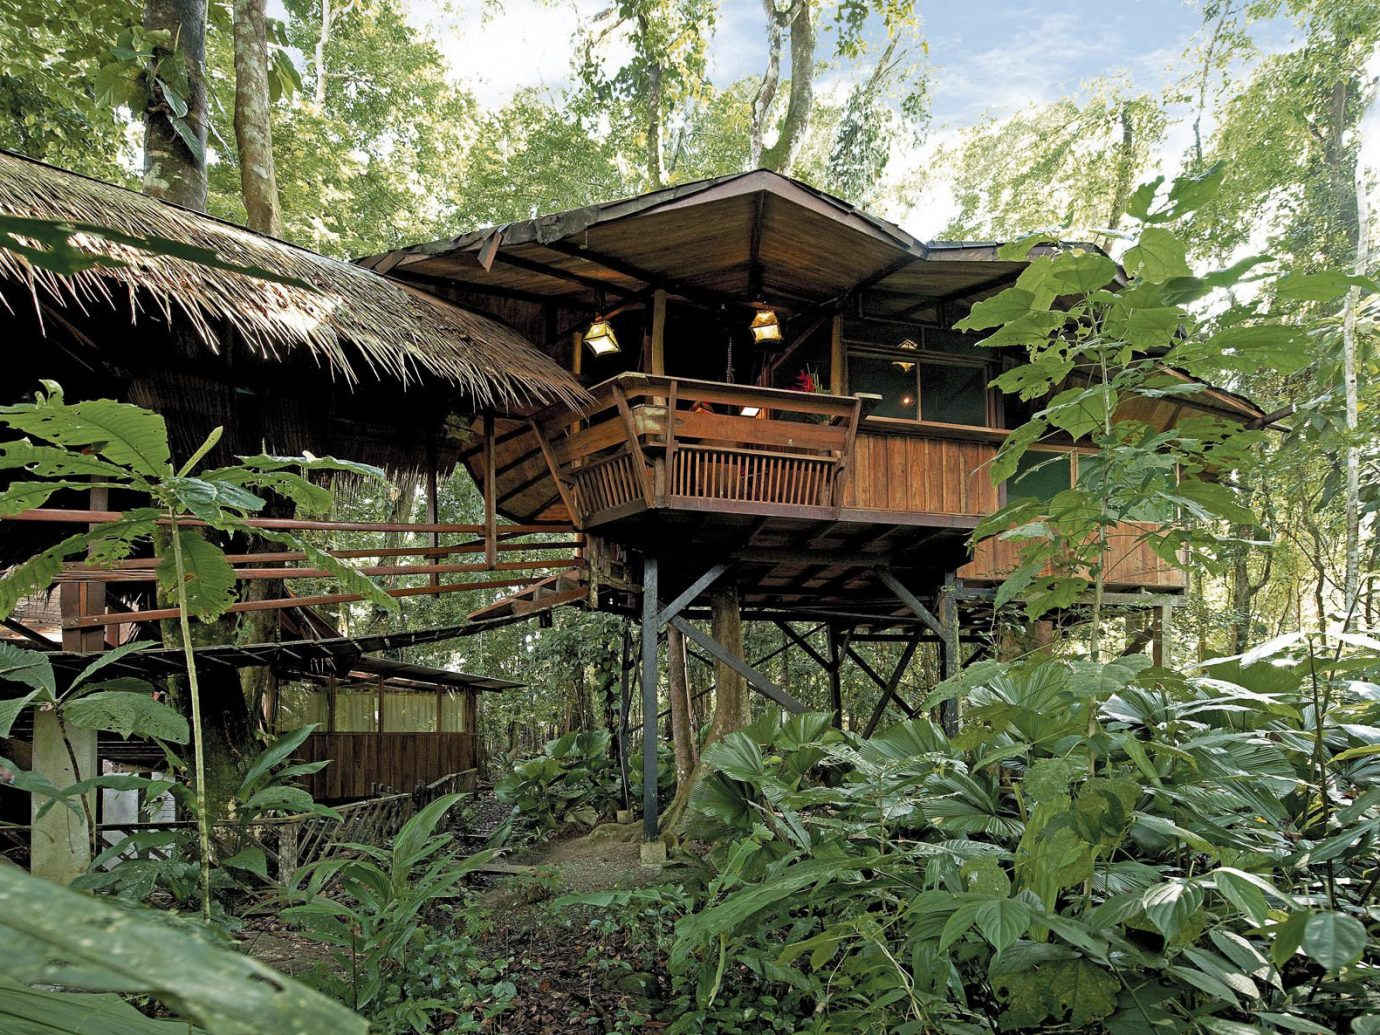 View of a cabin at Tree House Hotel in Punta Uva Costa Rica